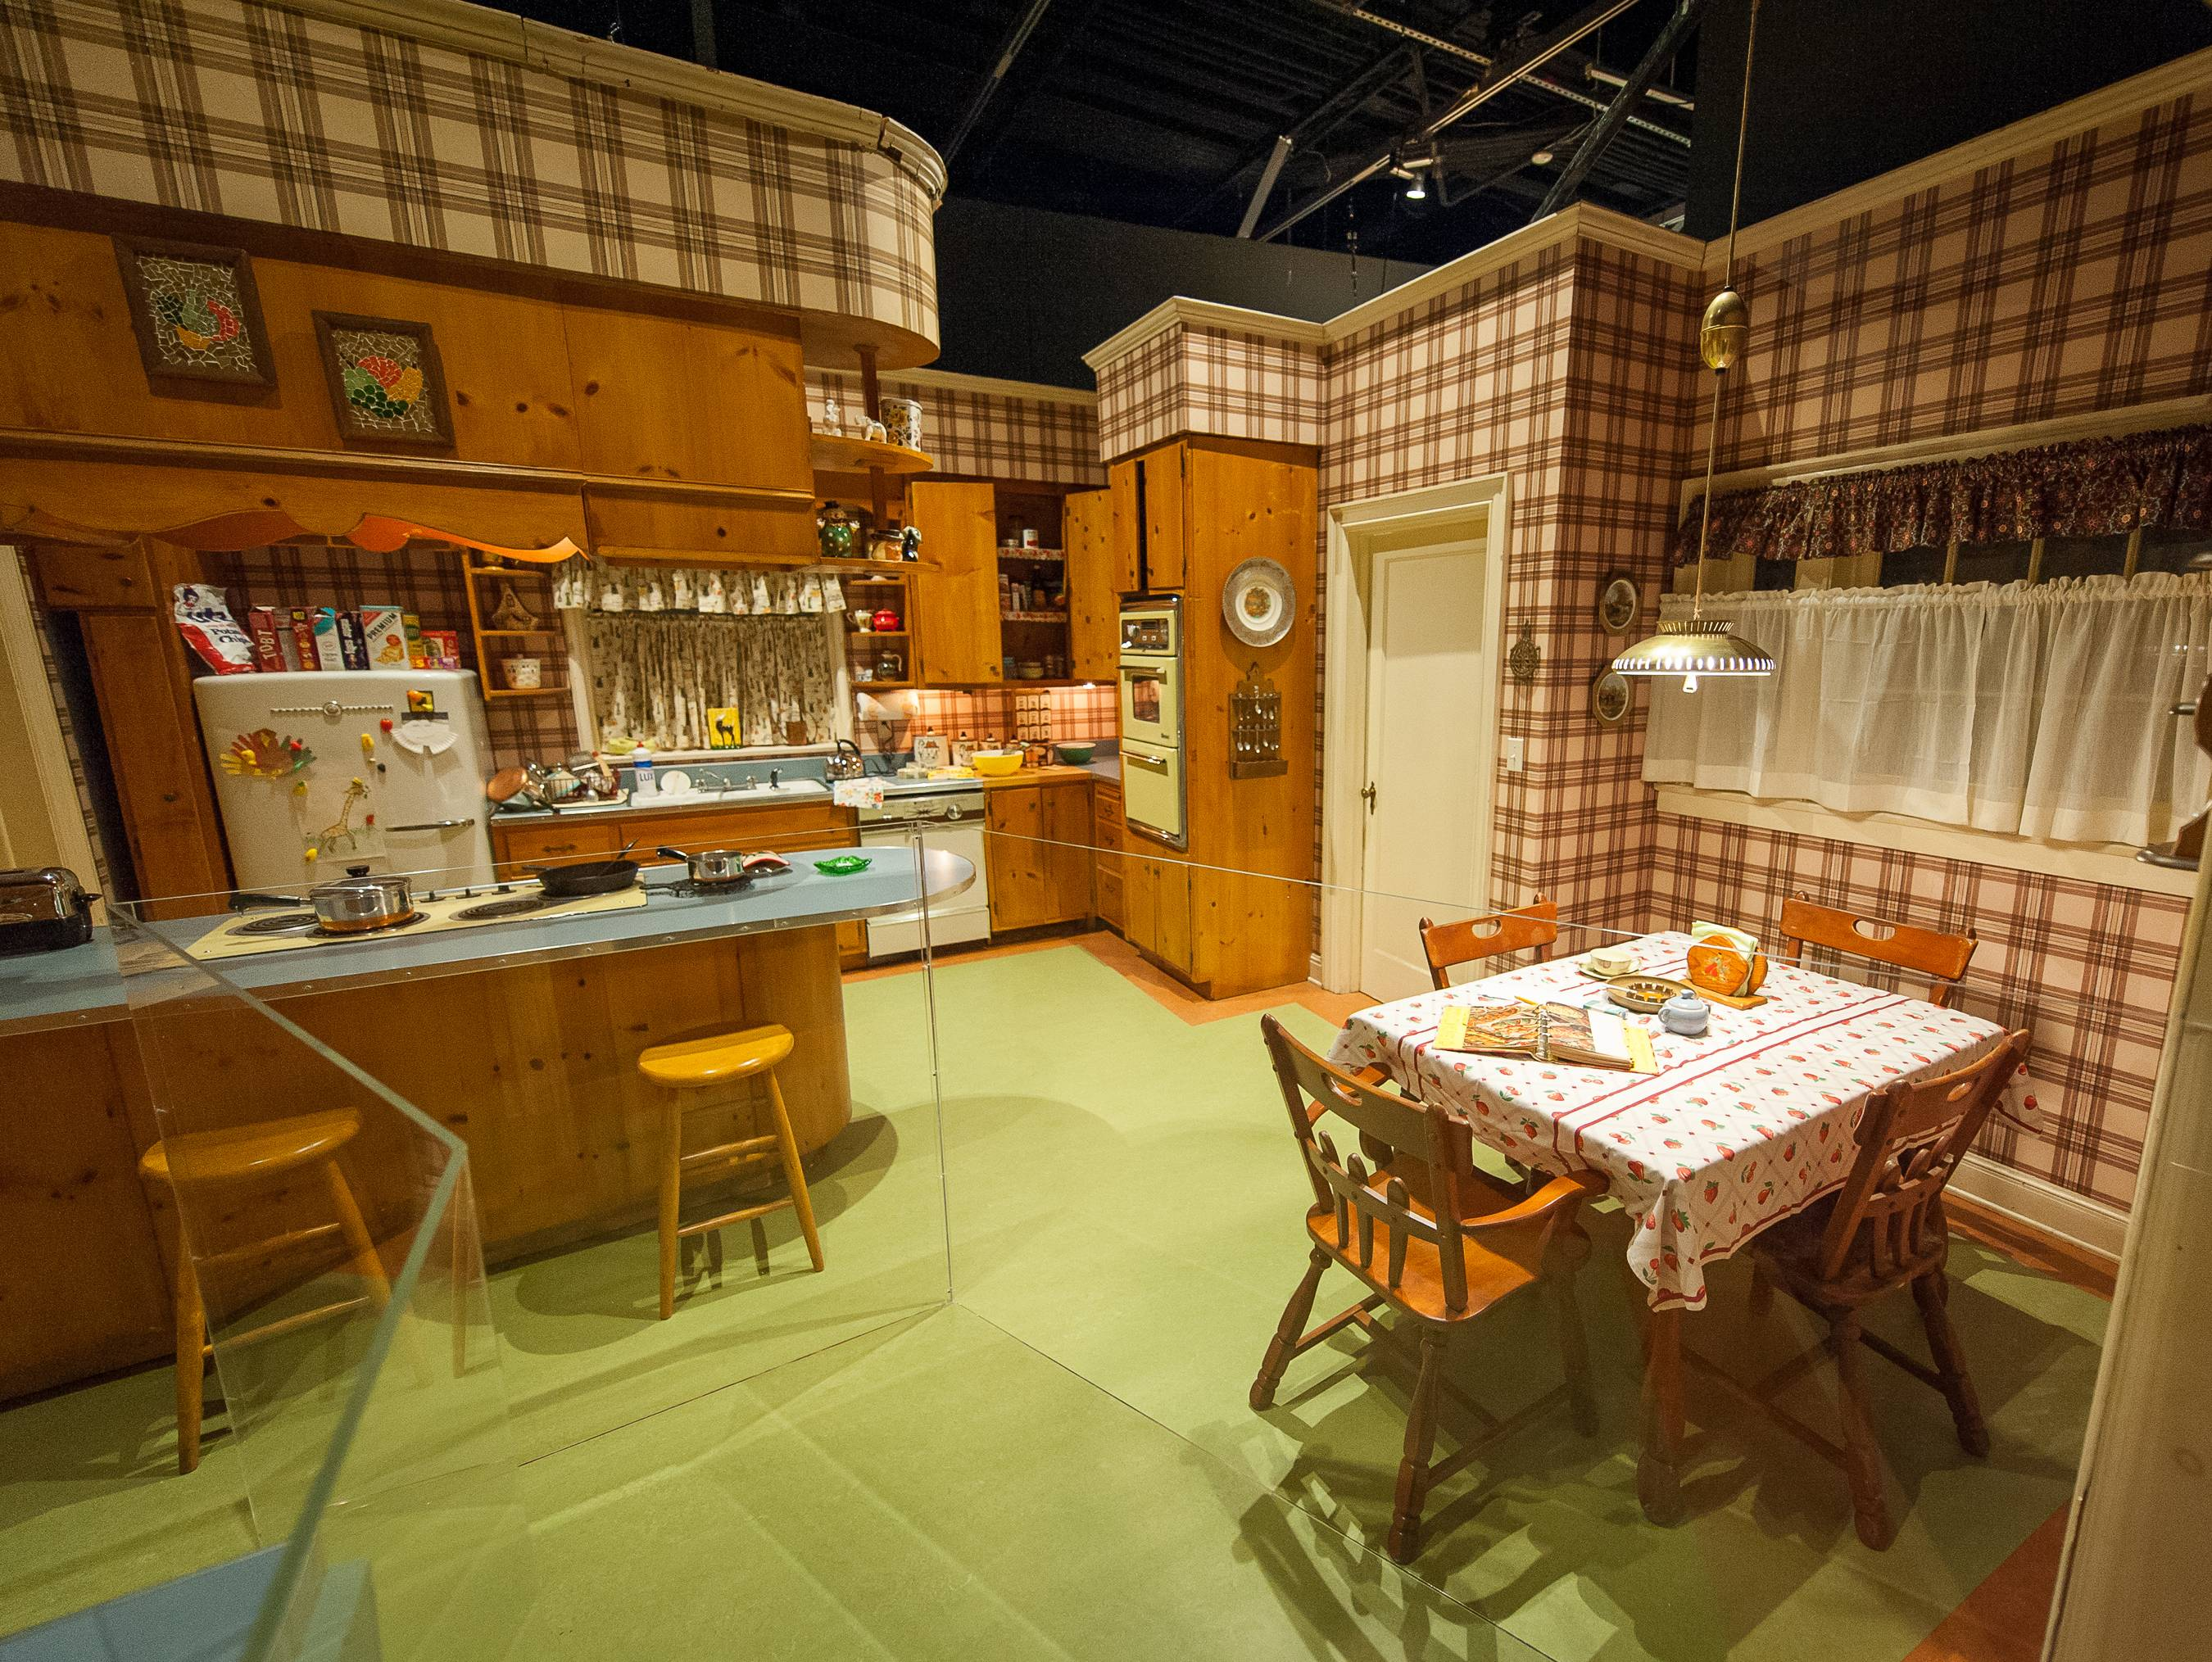 "The set of Betty and Don Draper's kitchen in their suburban Ossining, N.Y., home, featured in seasons 1-4 of ""Mad Men,"" is displayed as part of the exhibition ""Matthew Weiner's Mad Men"" at the Museum of the Moving Image in New York. The exhibit runs through June 14."